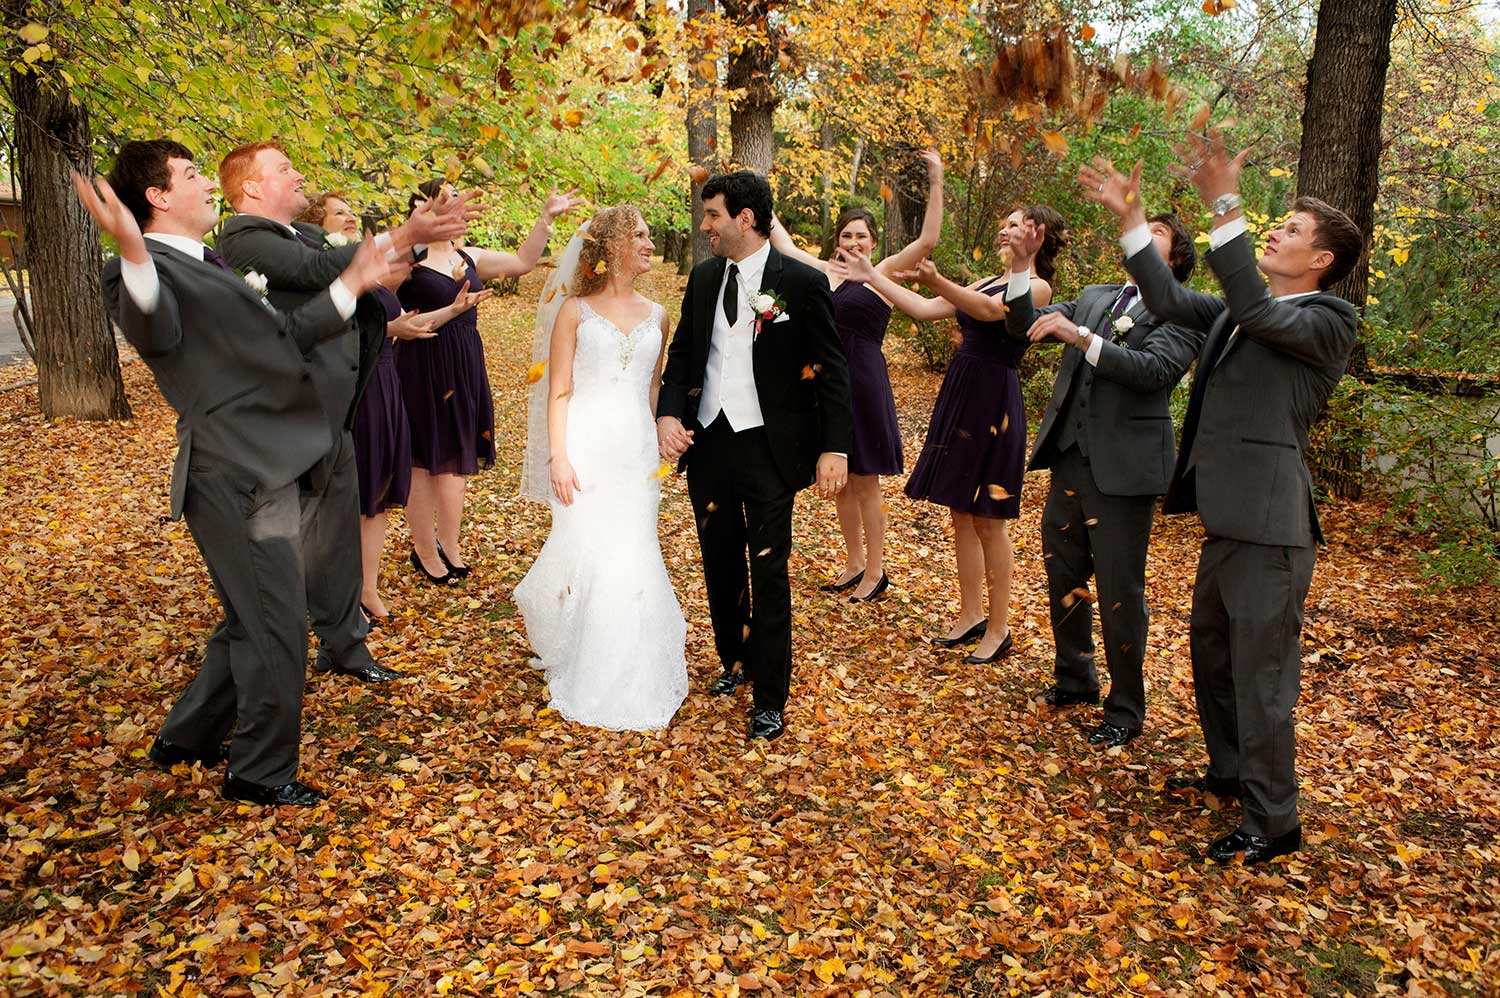 Professional Wedding Picture of Bride and Groom in Fall Scene